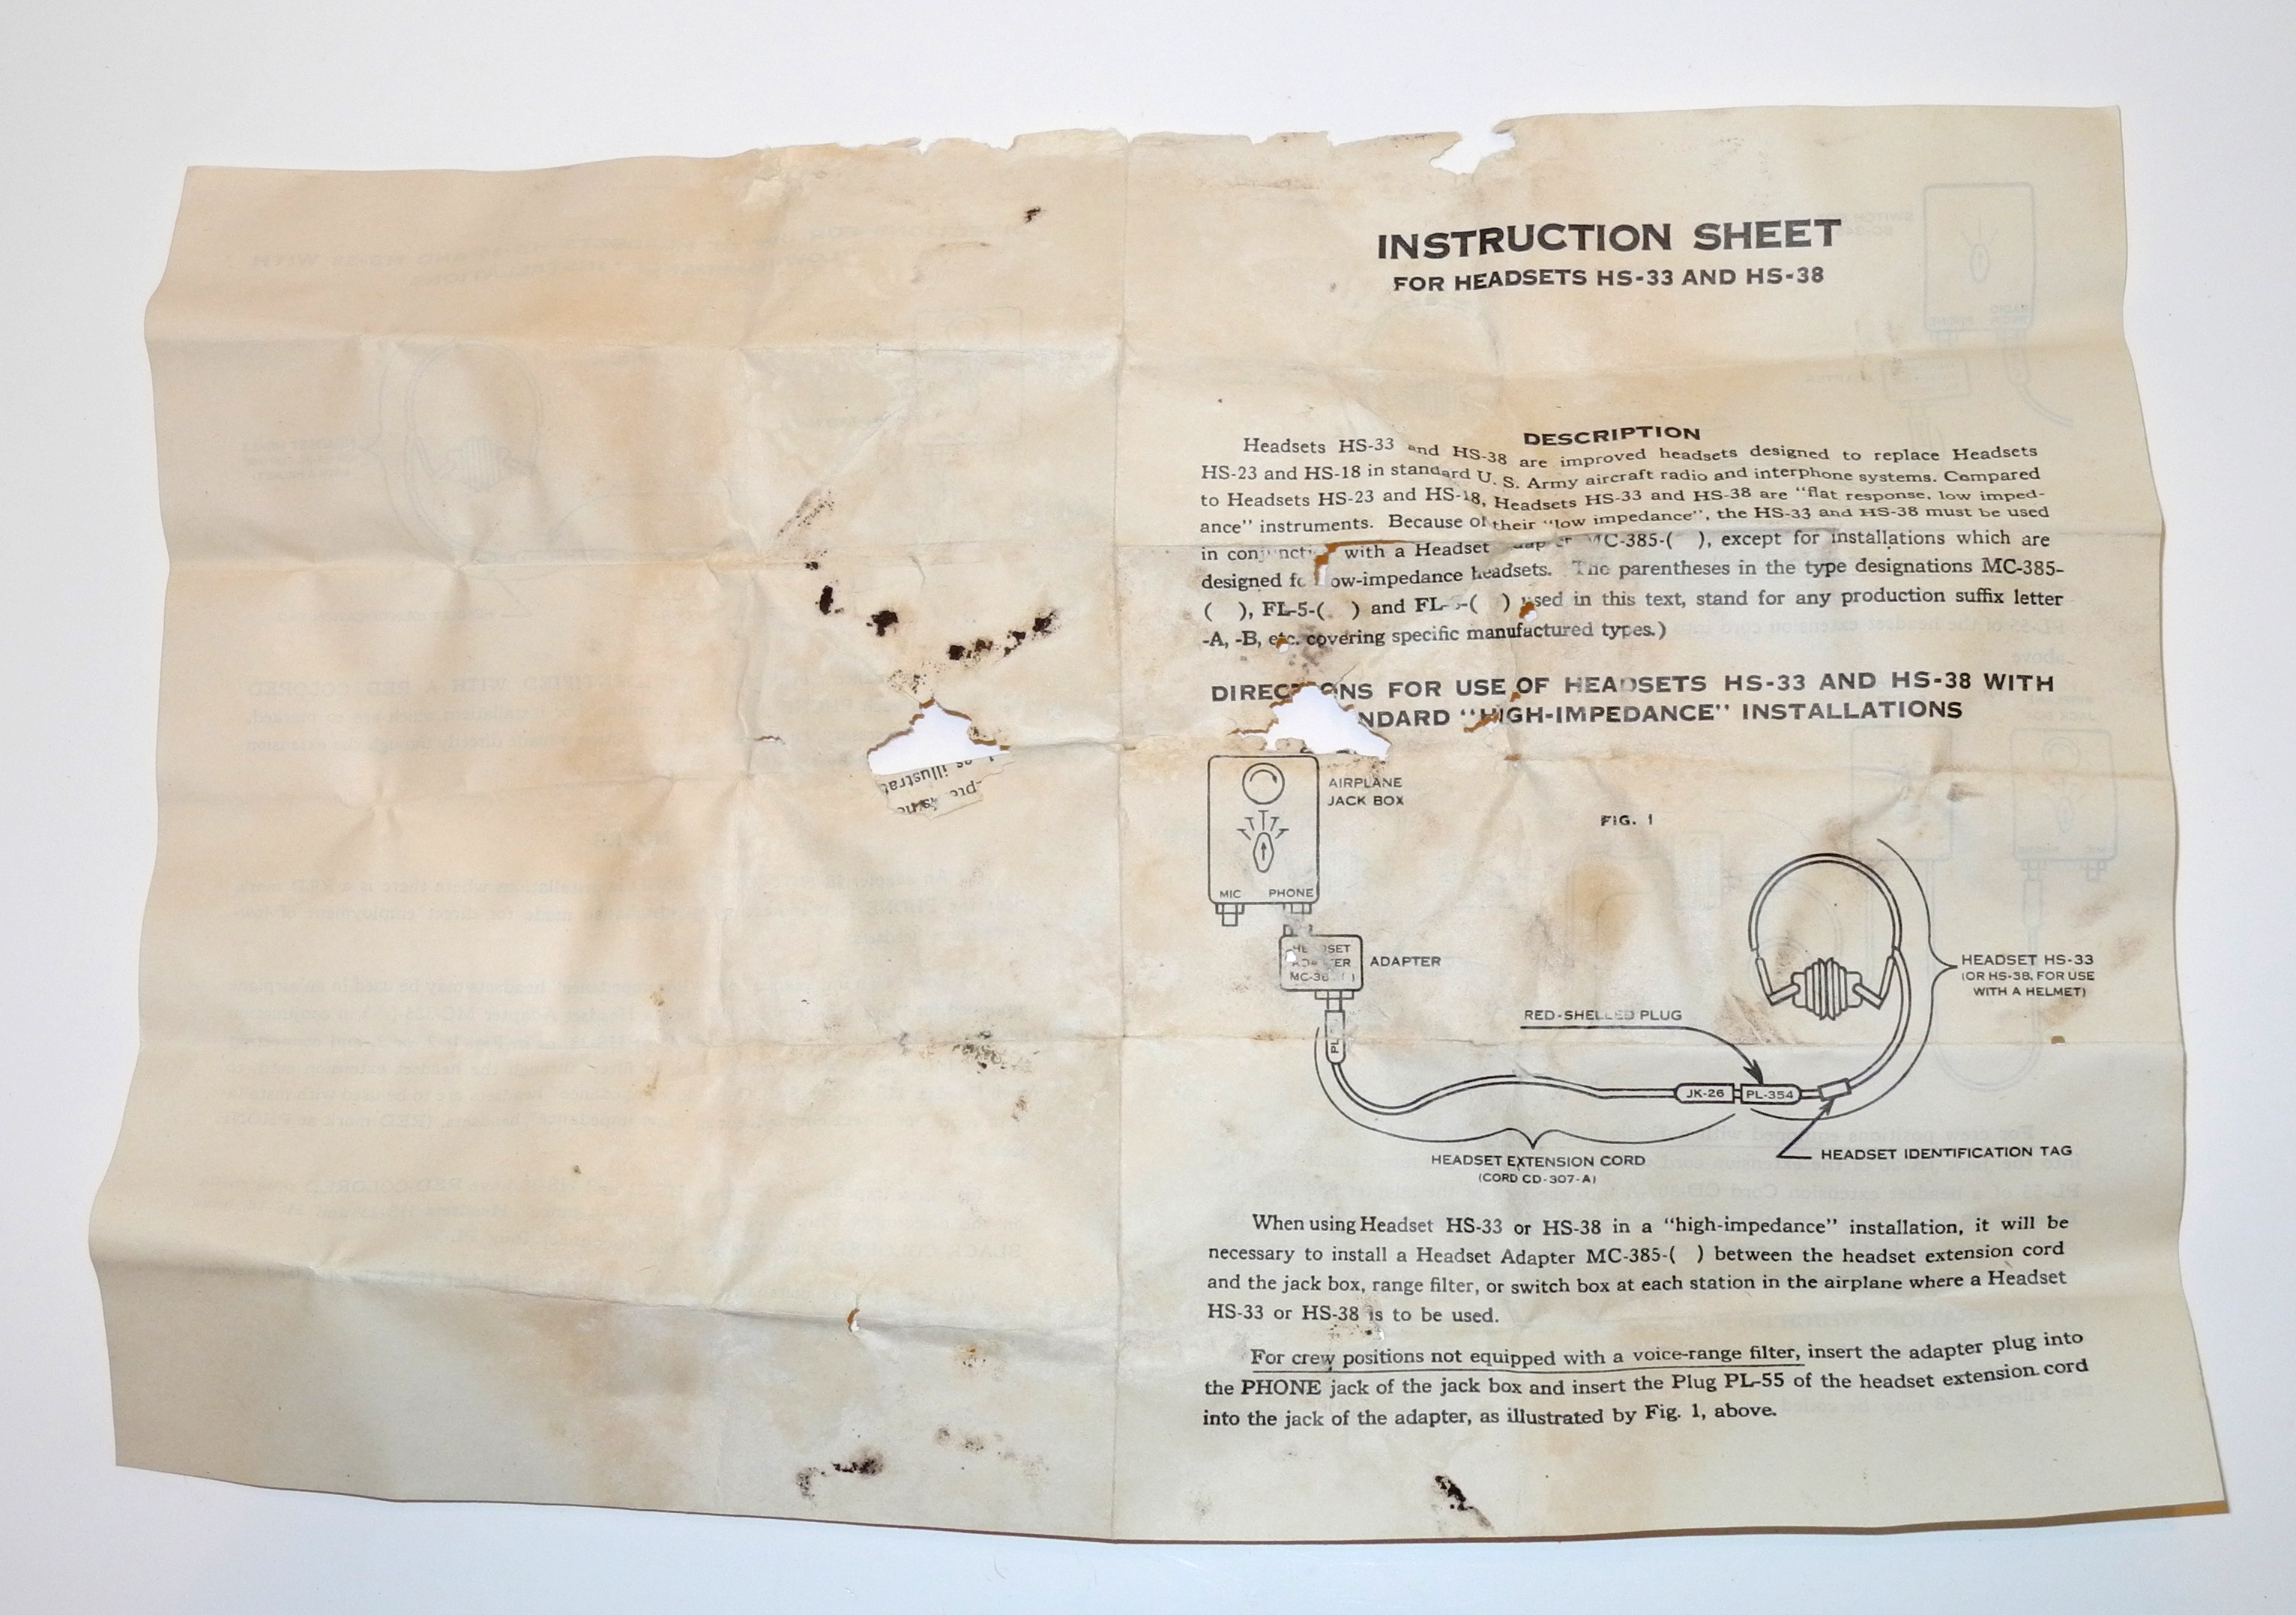 Instruction sheet for HS-33 / HS-38 radio headset.